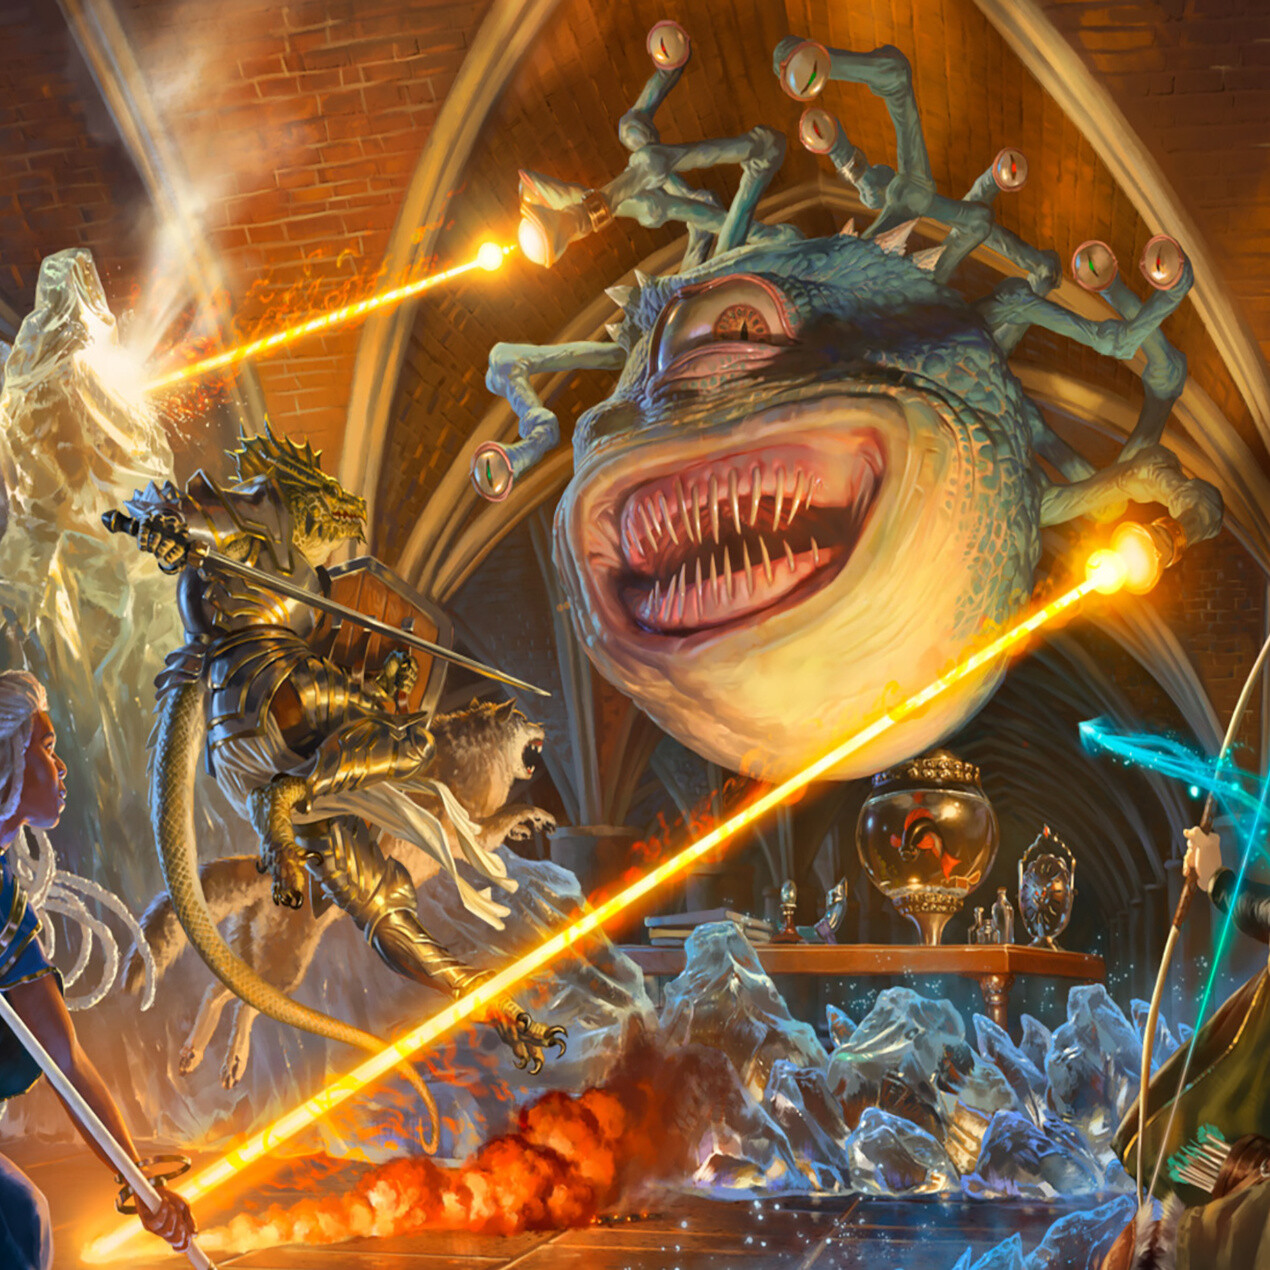 'Magic: The Gathering' goes on a 'Dungeons & Dragons' adventure